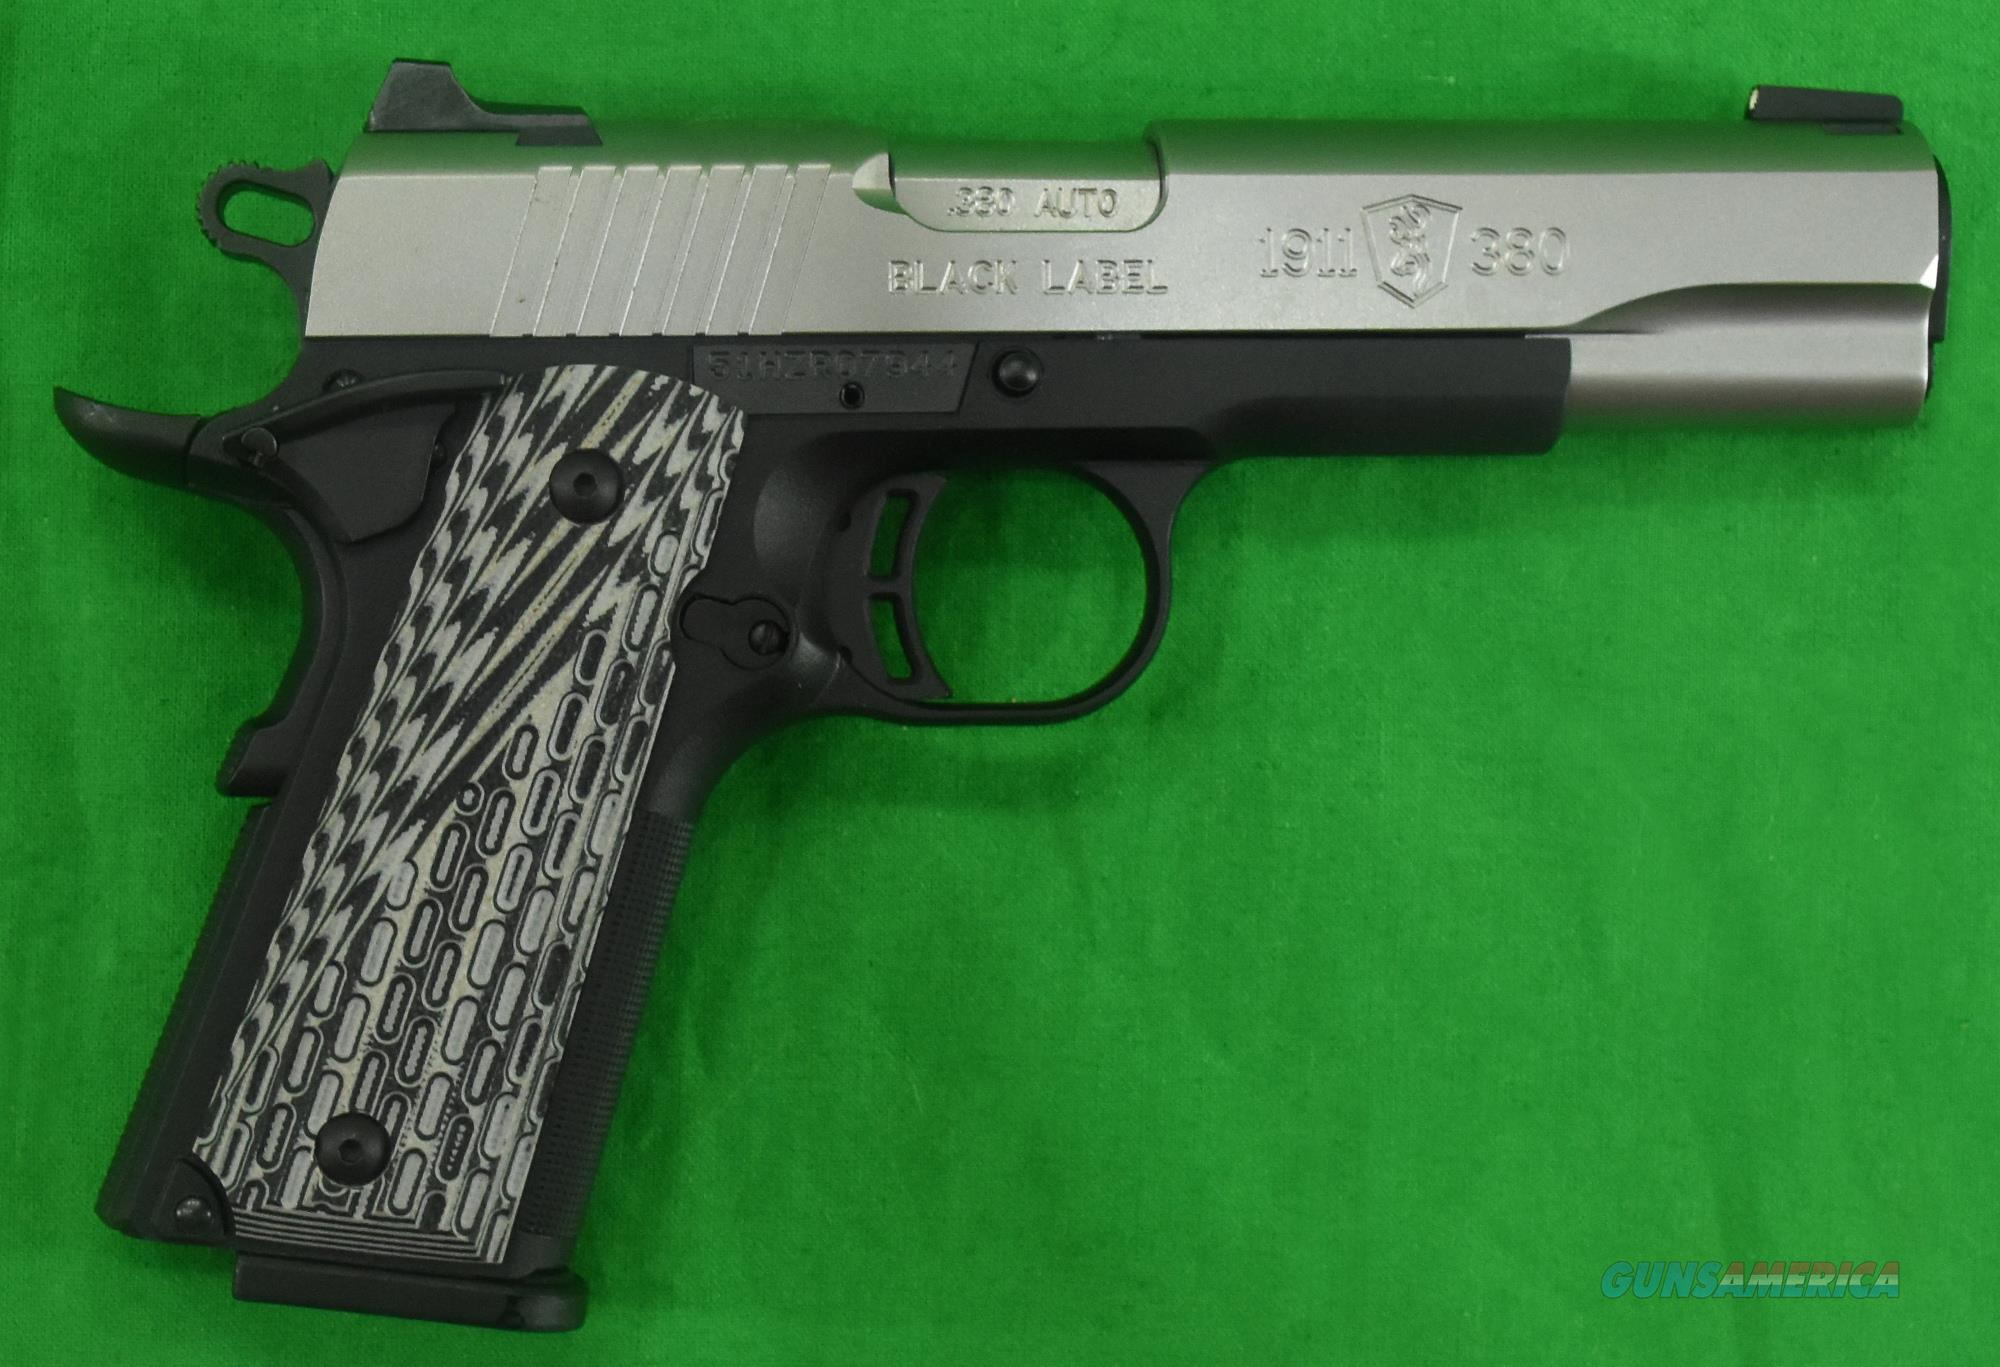 1911 Black Label 380ACP 4.2In - Stainless 051922492  Guns > Pistols > Browning Pistols > Other Autos